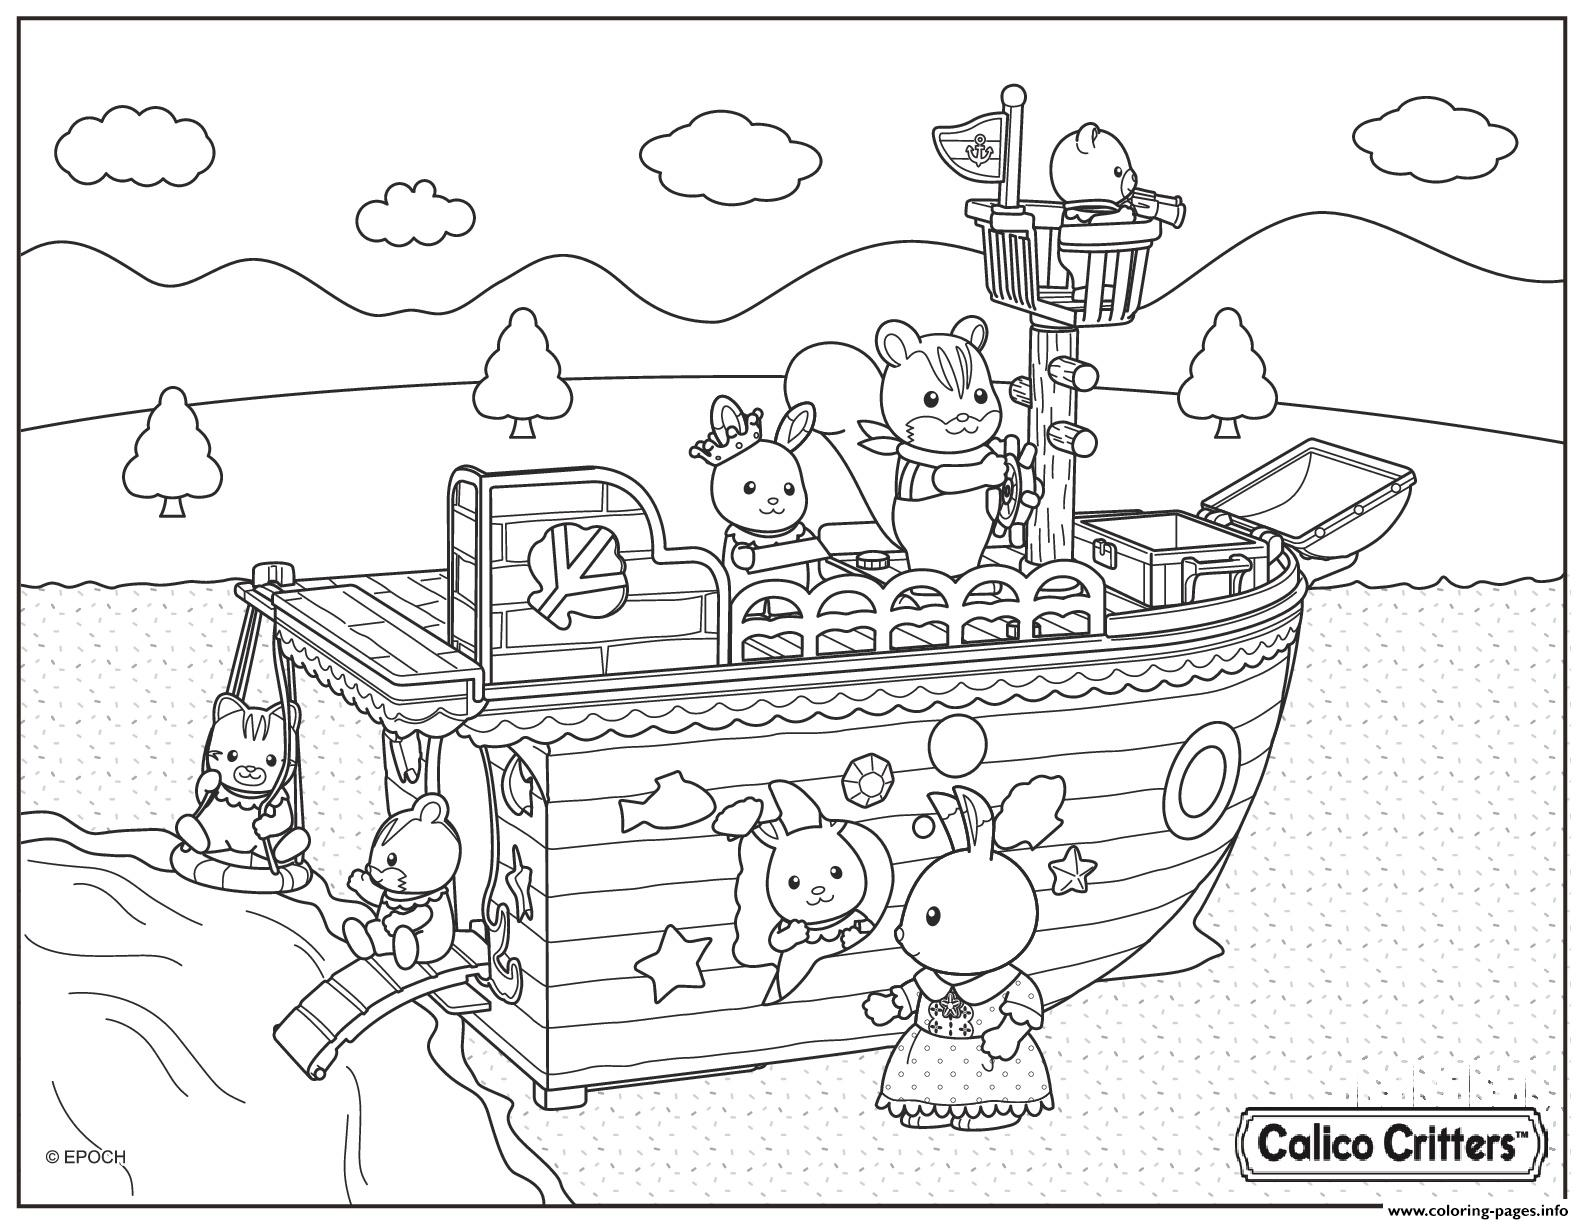 Calico critters boat trip captain coloring pages printable for Little critter coloring pages